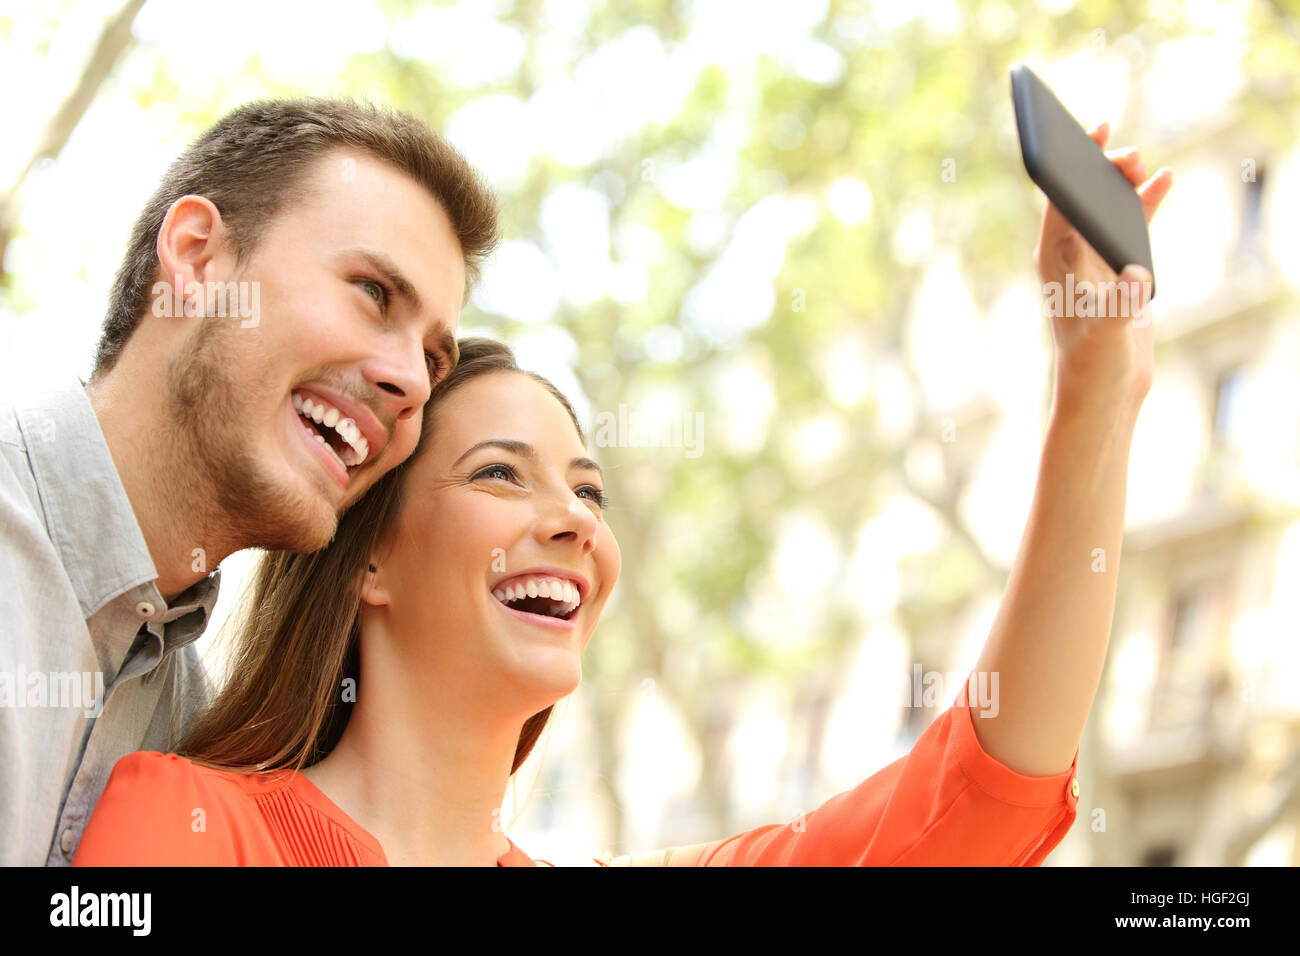 Happy casual couple taking selfie or photographing with a smart phone in the street - Stock Image